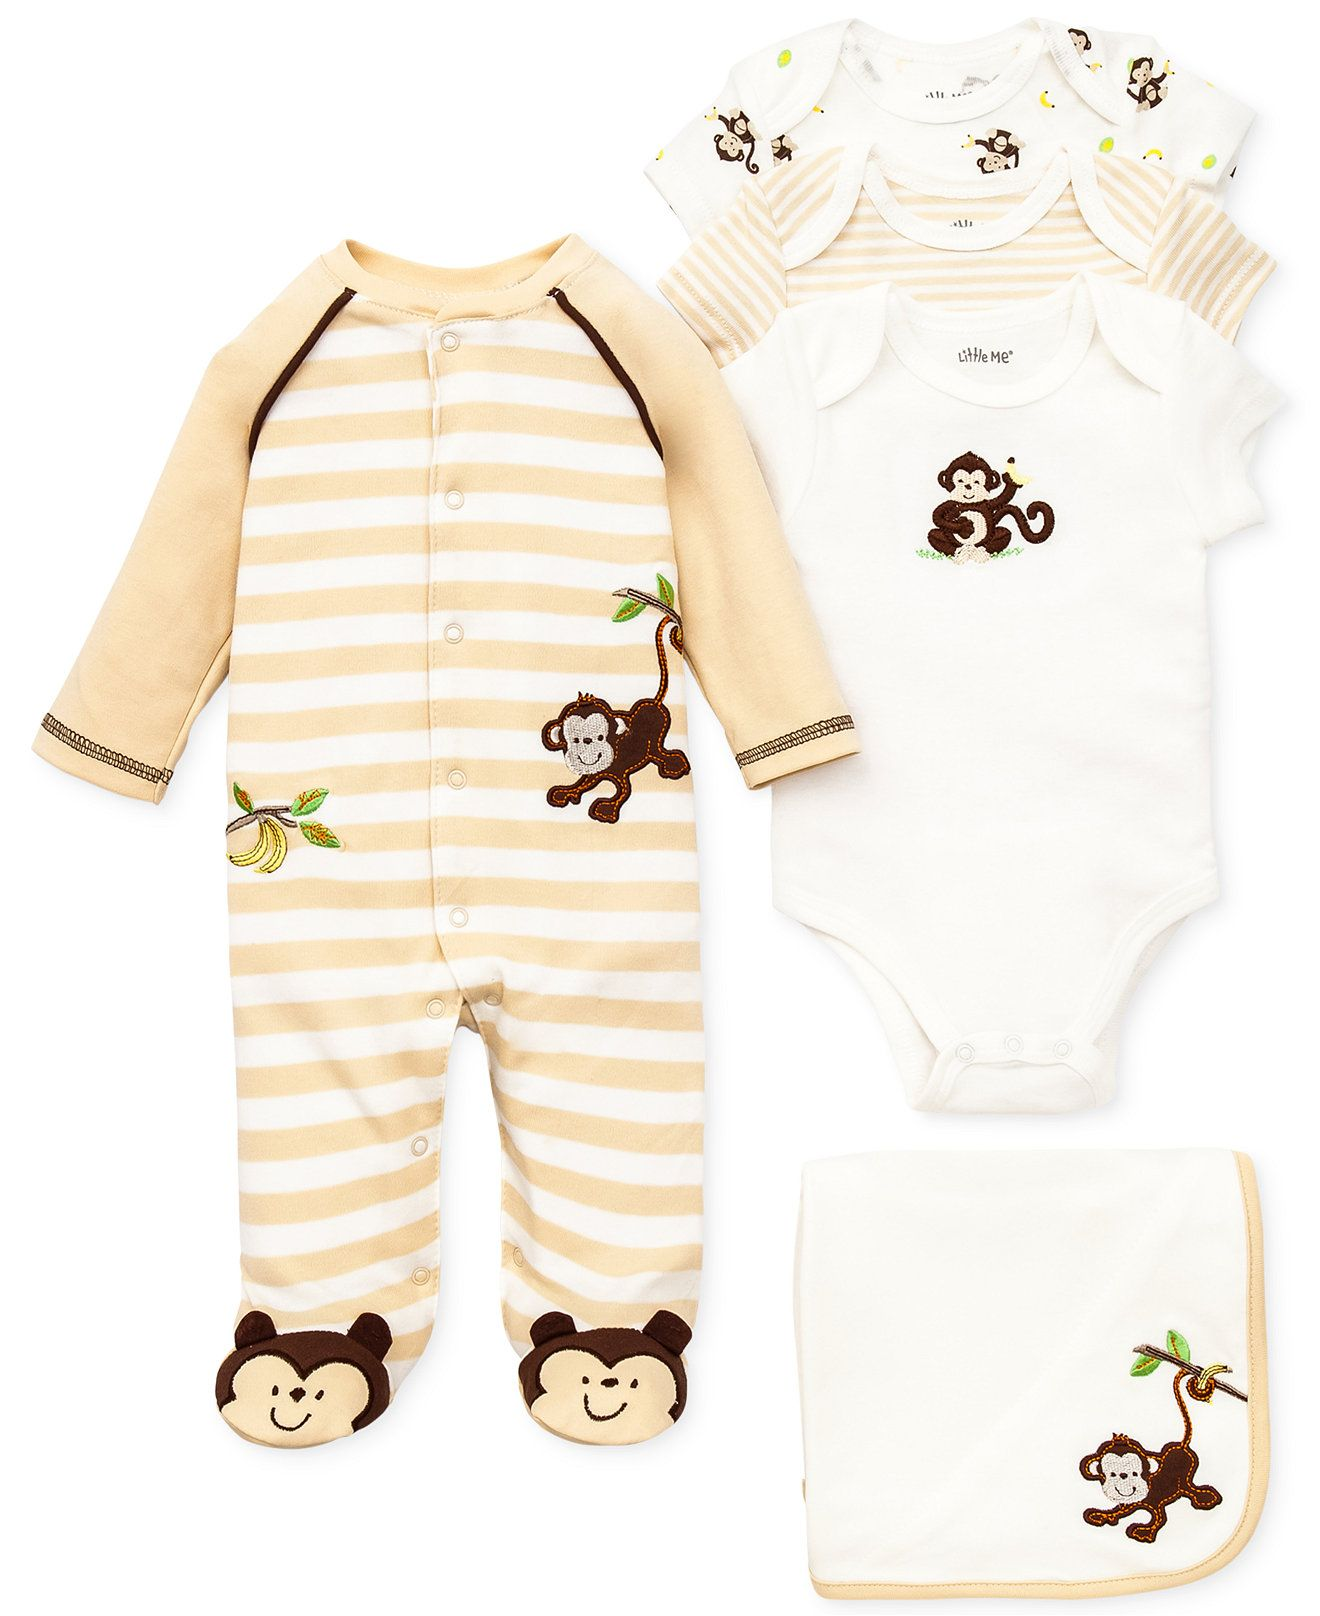 Size 24 months Freeship NEW Little Me Boys 3 Piece Romper /& Hat Set